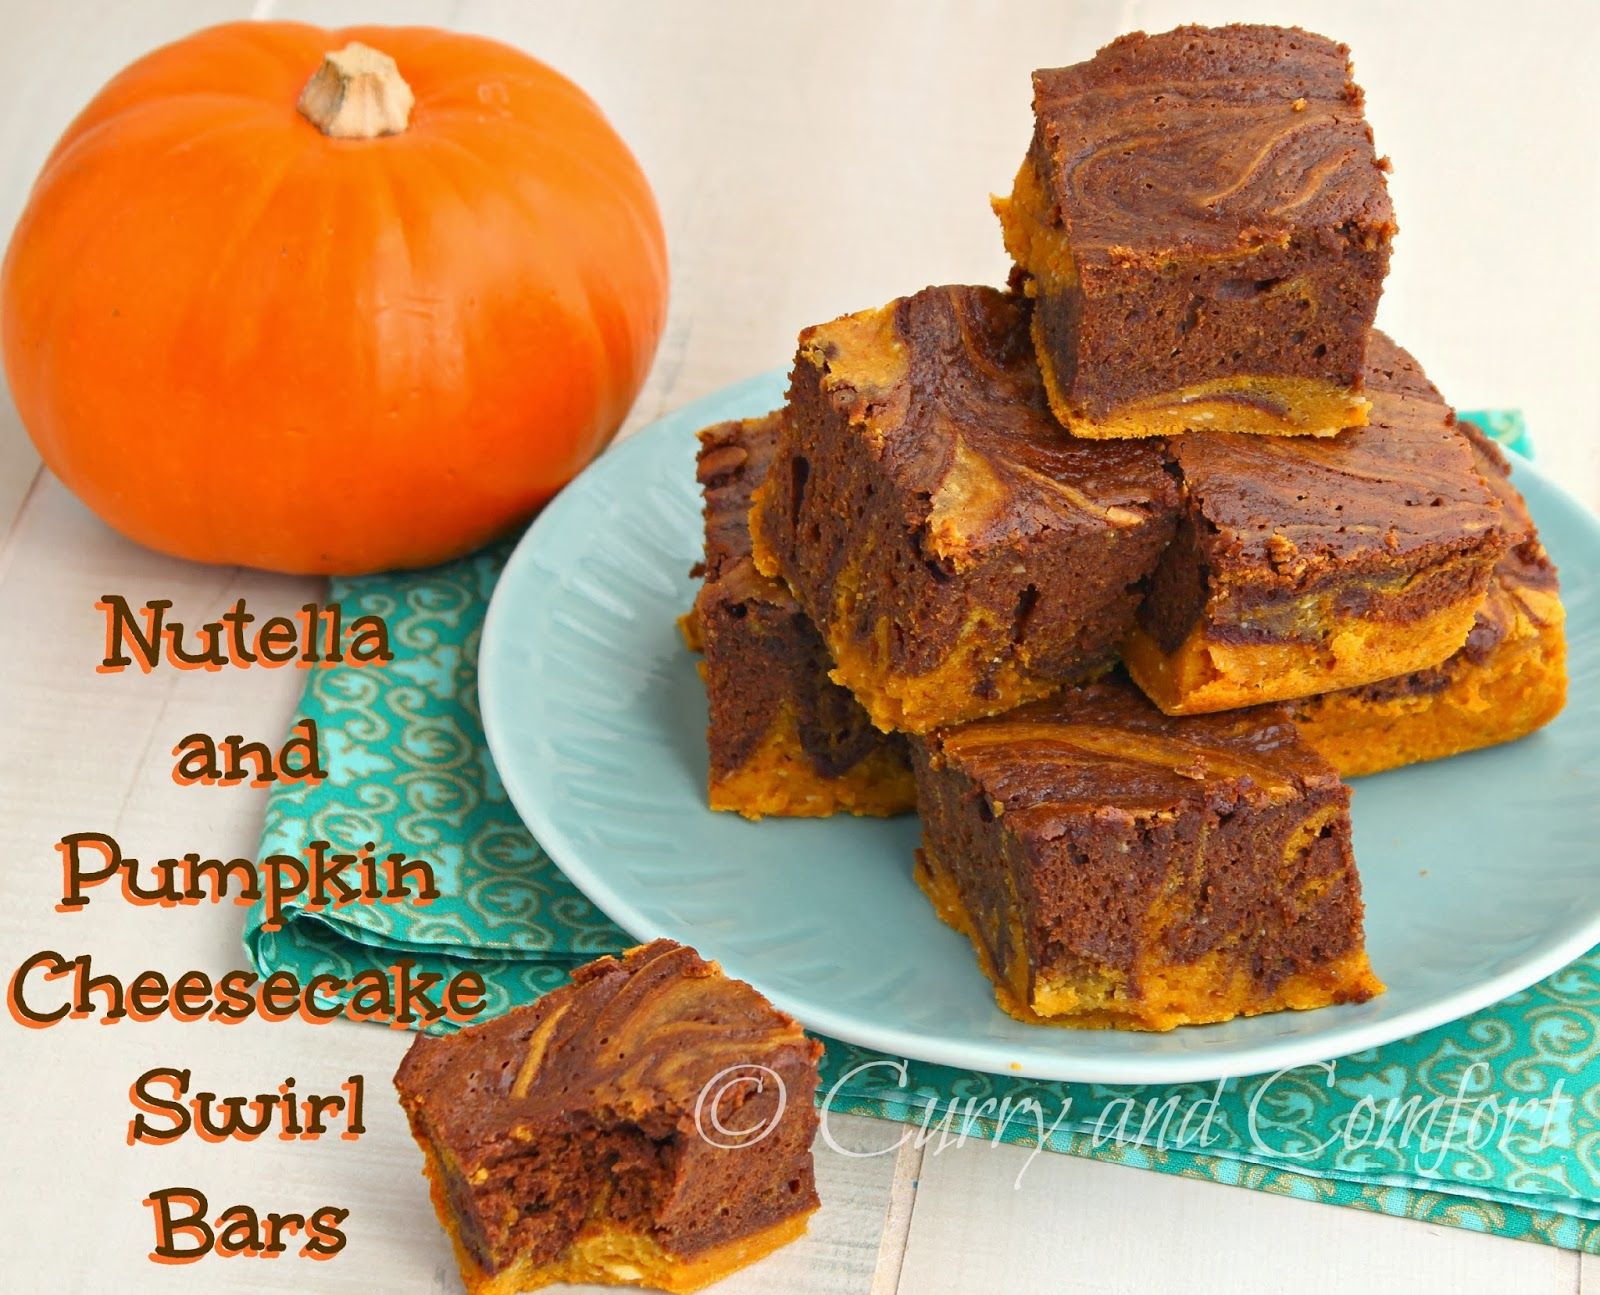 Kitchen Simmer: Nutella and Pumpkin Cheese Cake Swirl Bars